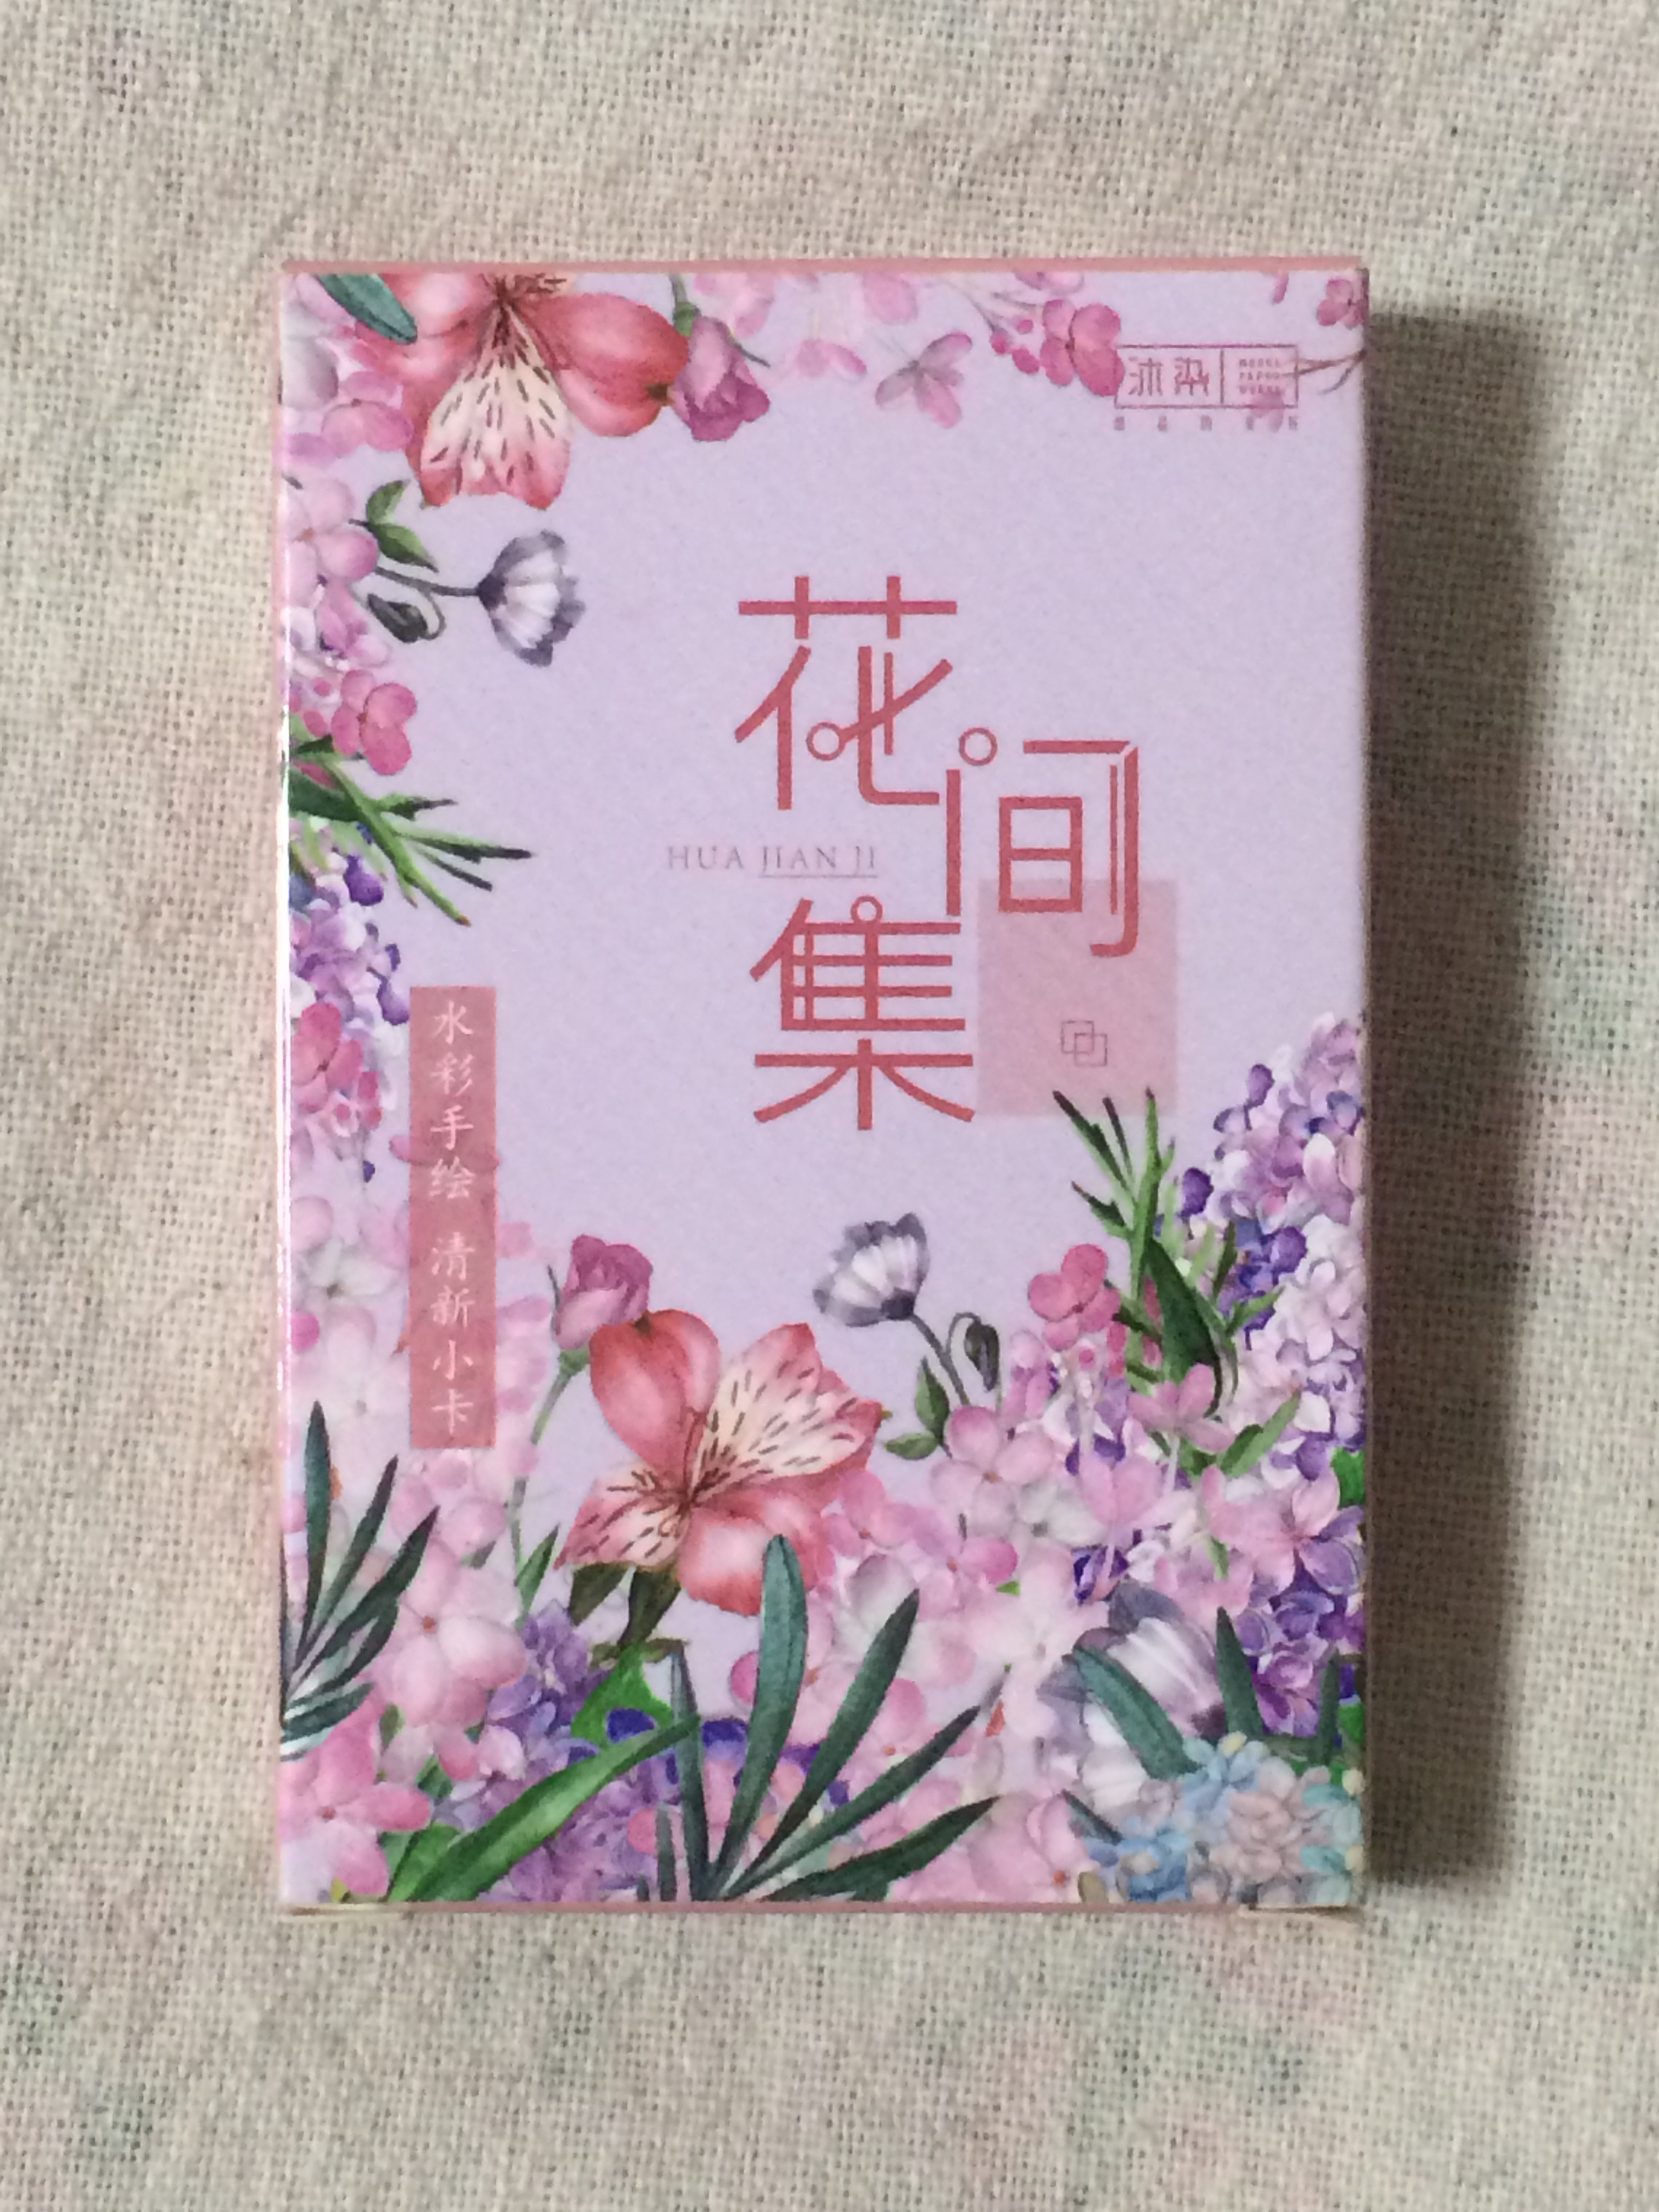 57mm*87mm Flower Story Paper Greeting Card Lomo Card(1pack=27pieces)